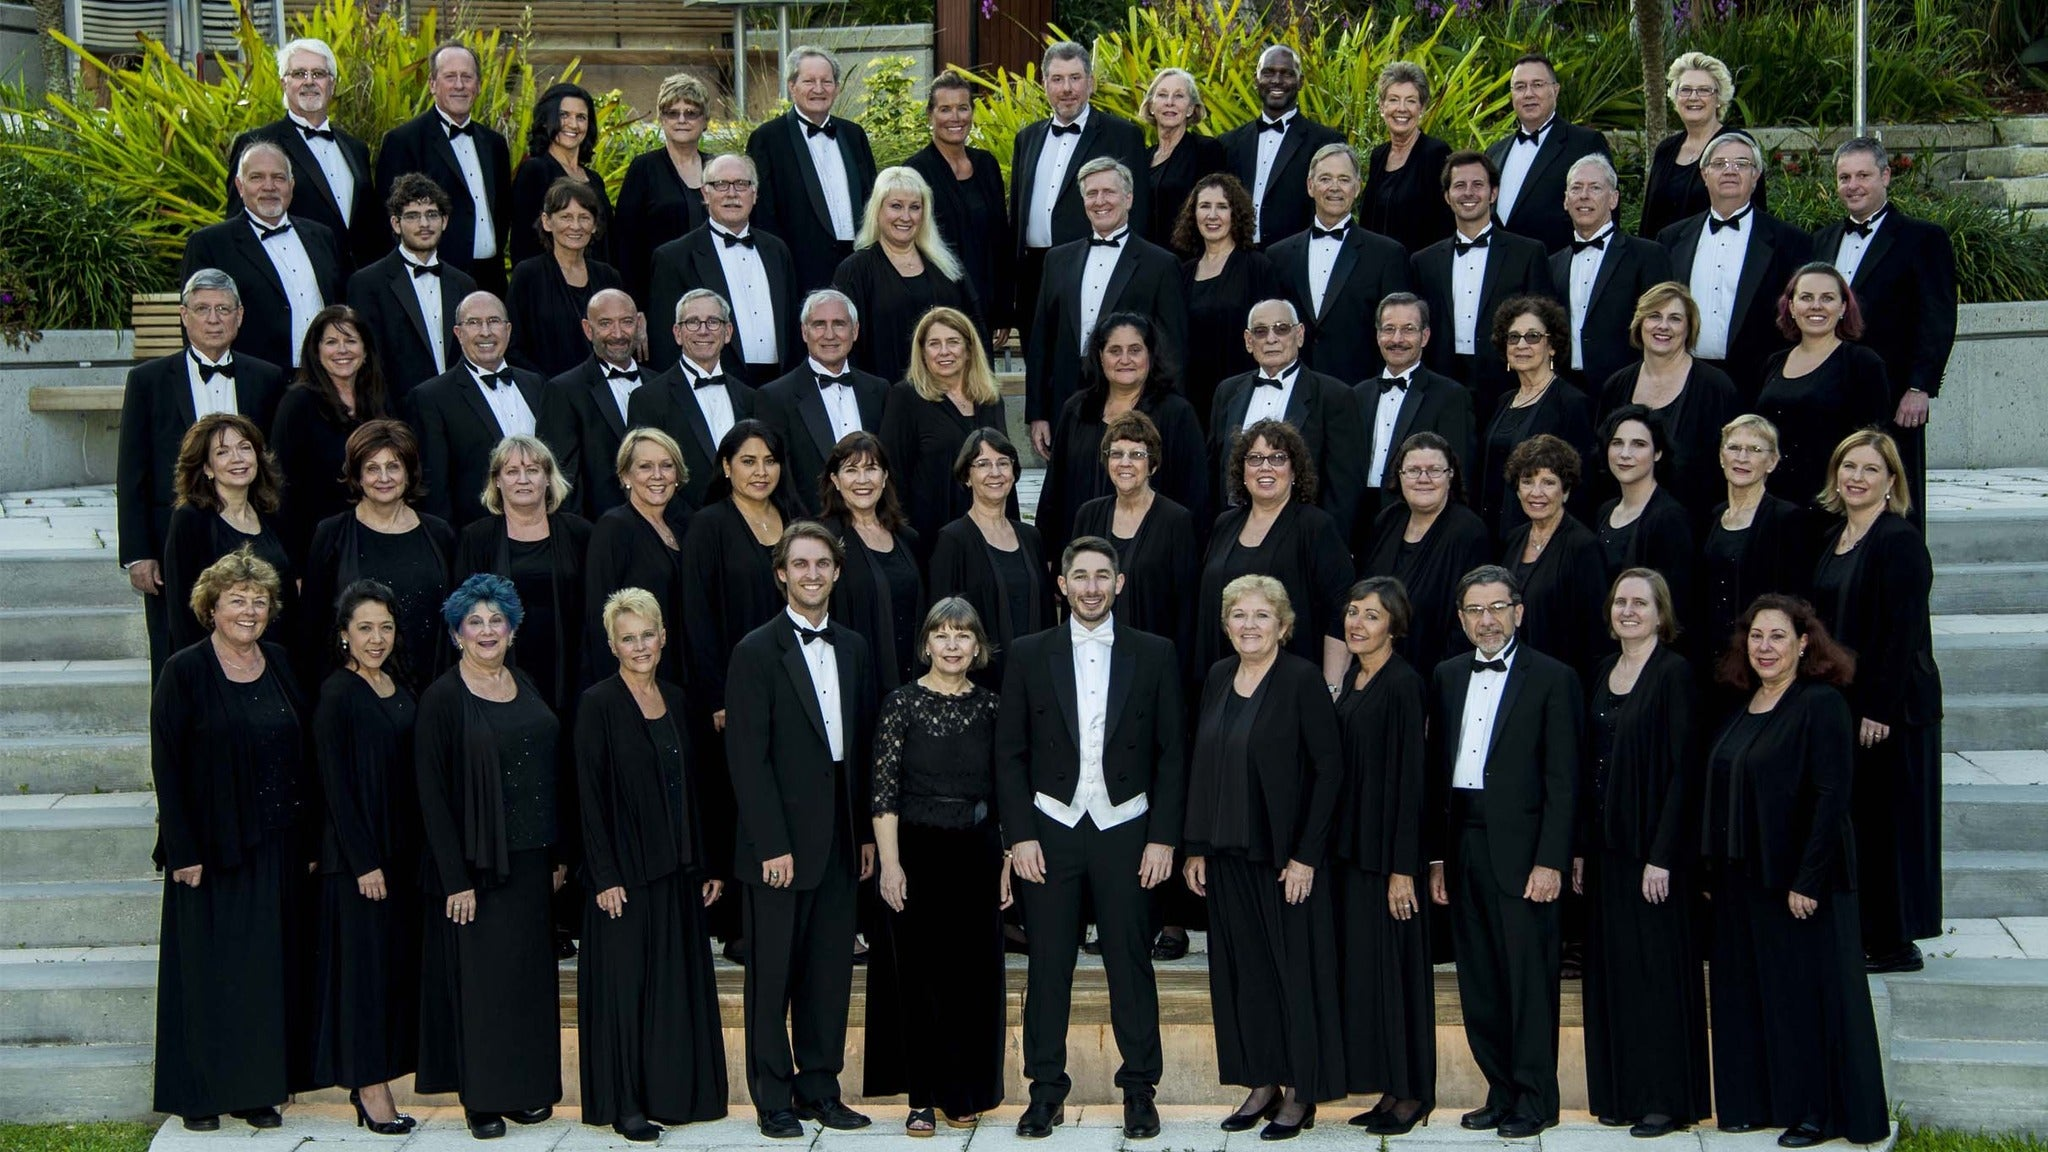 Master Chorale of South Florida - Handel's Messiah